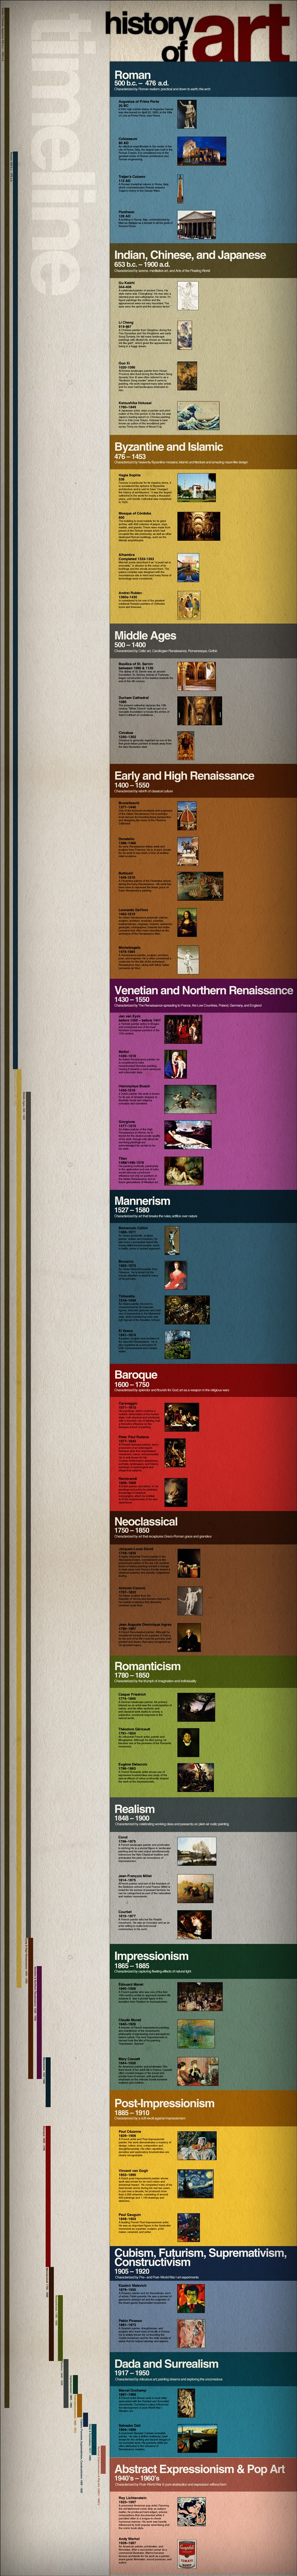 Timeline History Of Art - Tipsögraphic